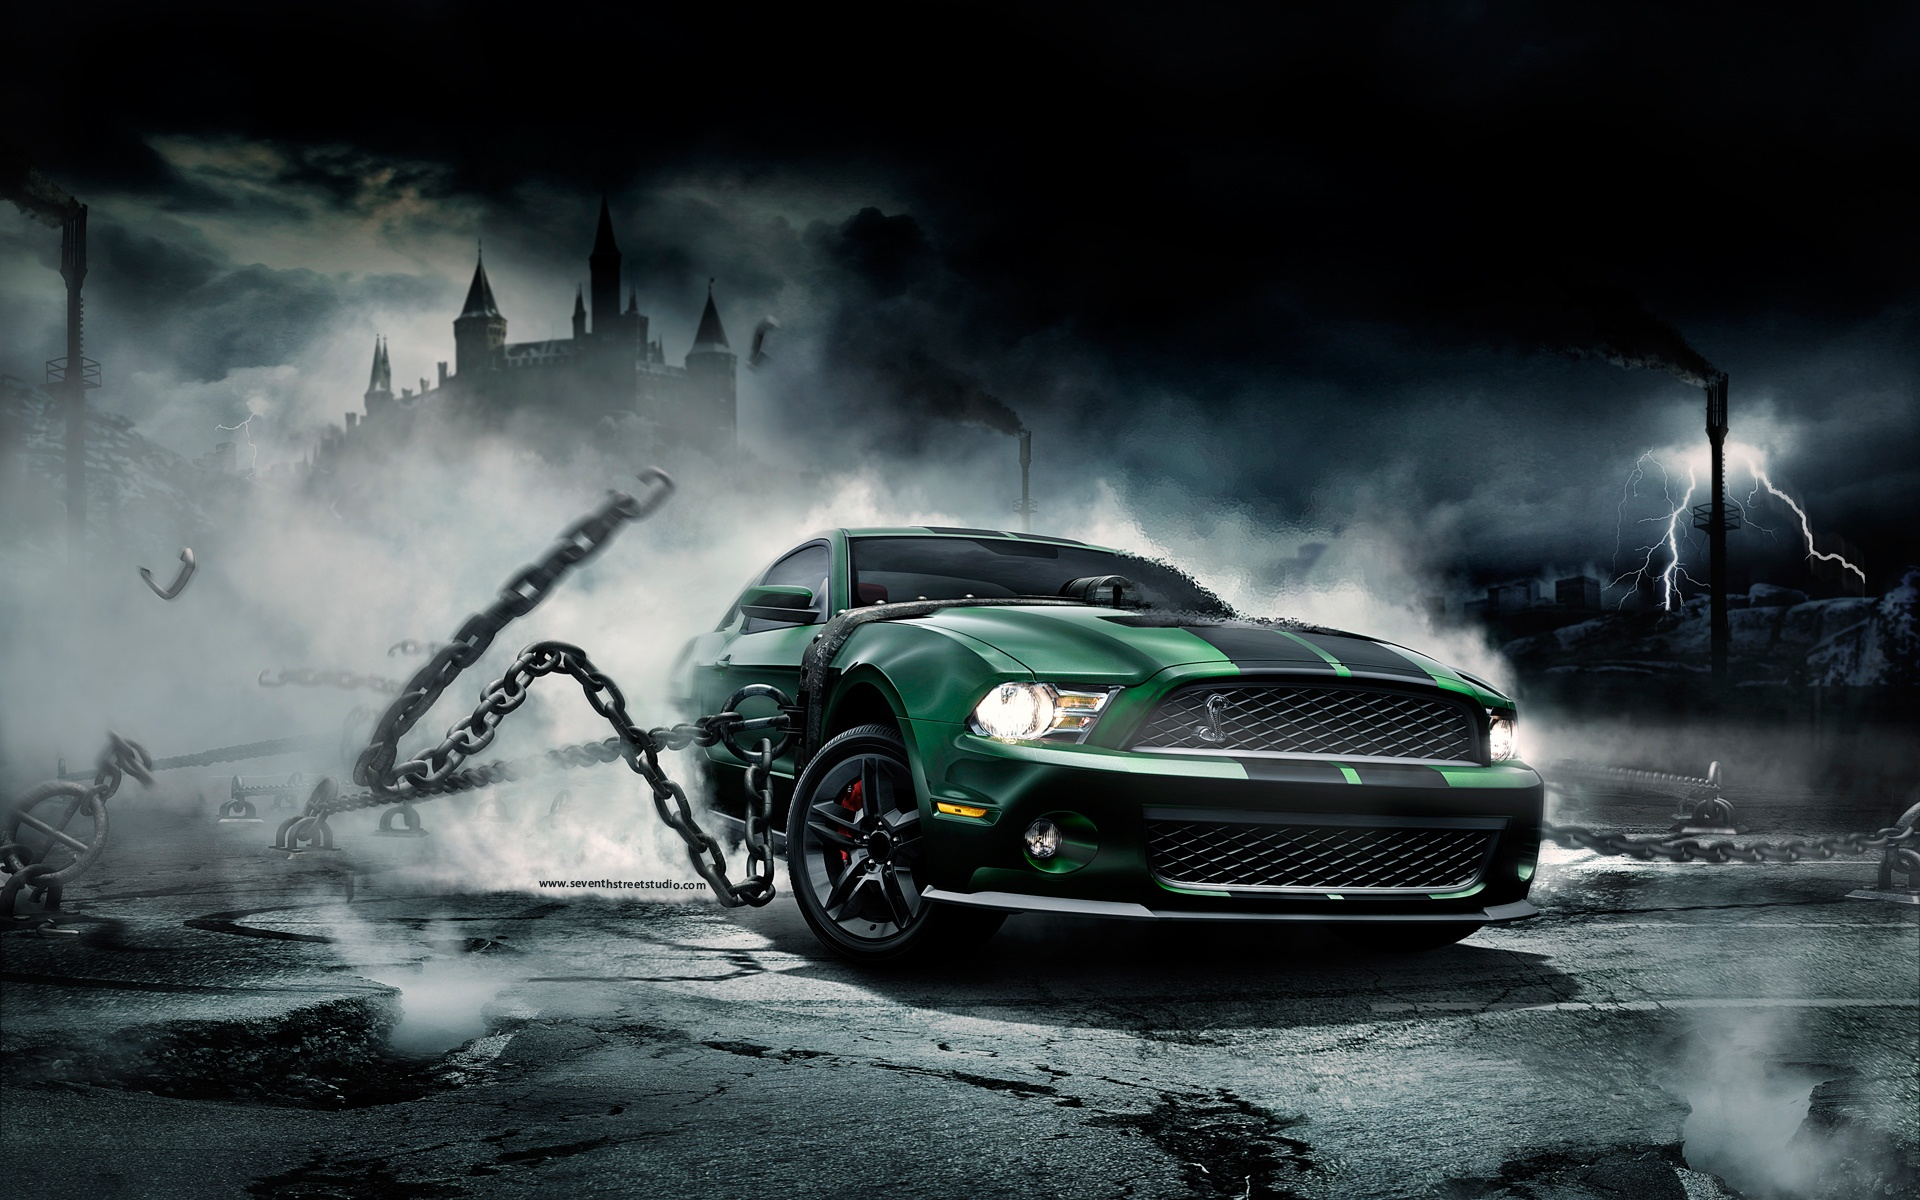 Ugly monster wallpapers for free download about 42 wallpapers mustang monster voltagebd Images